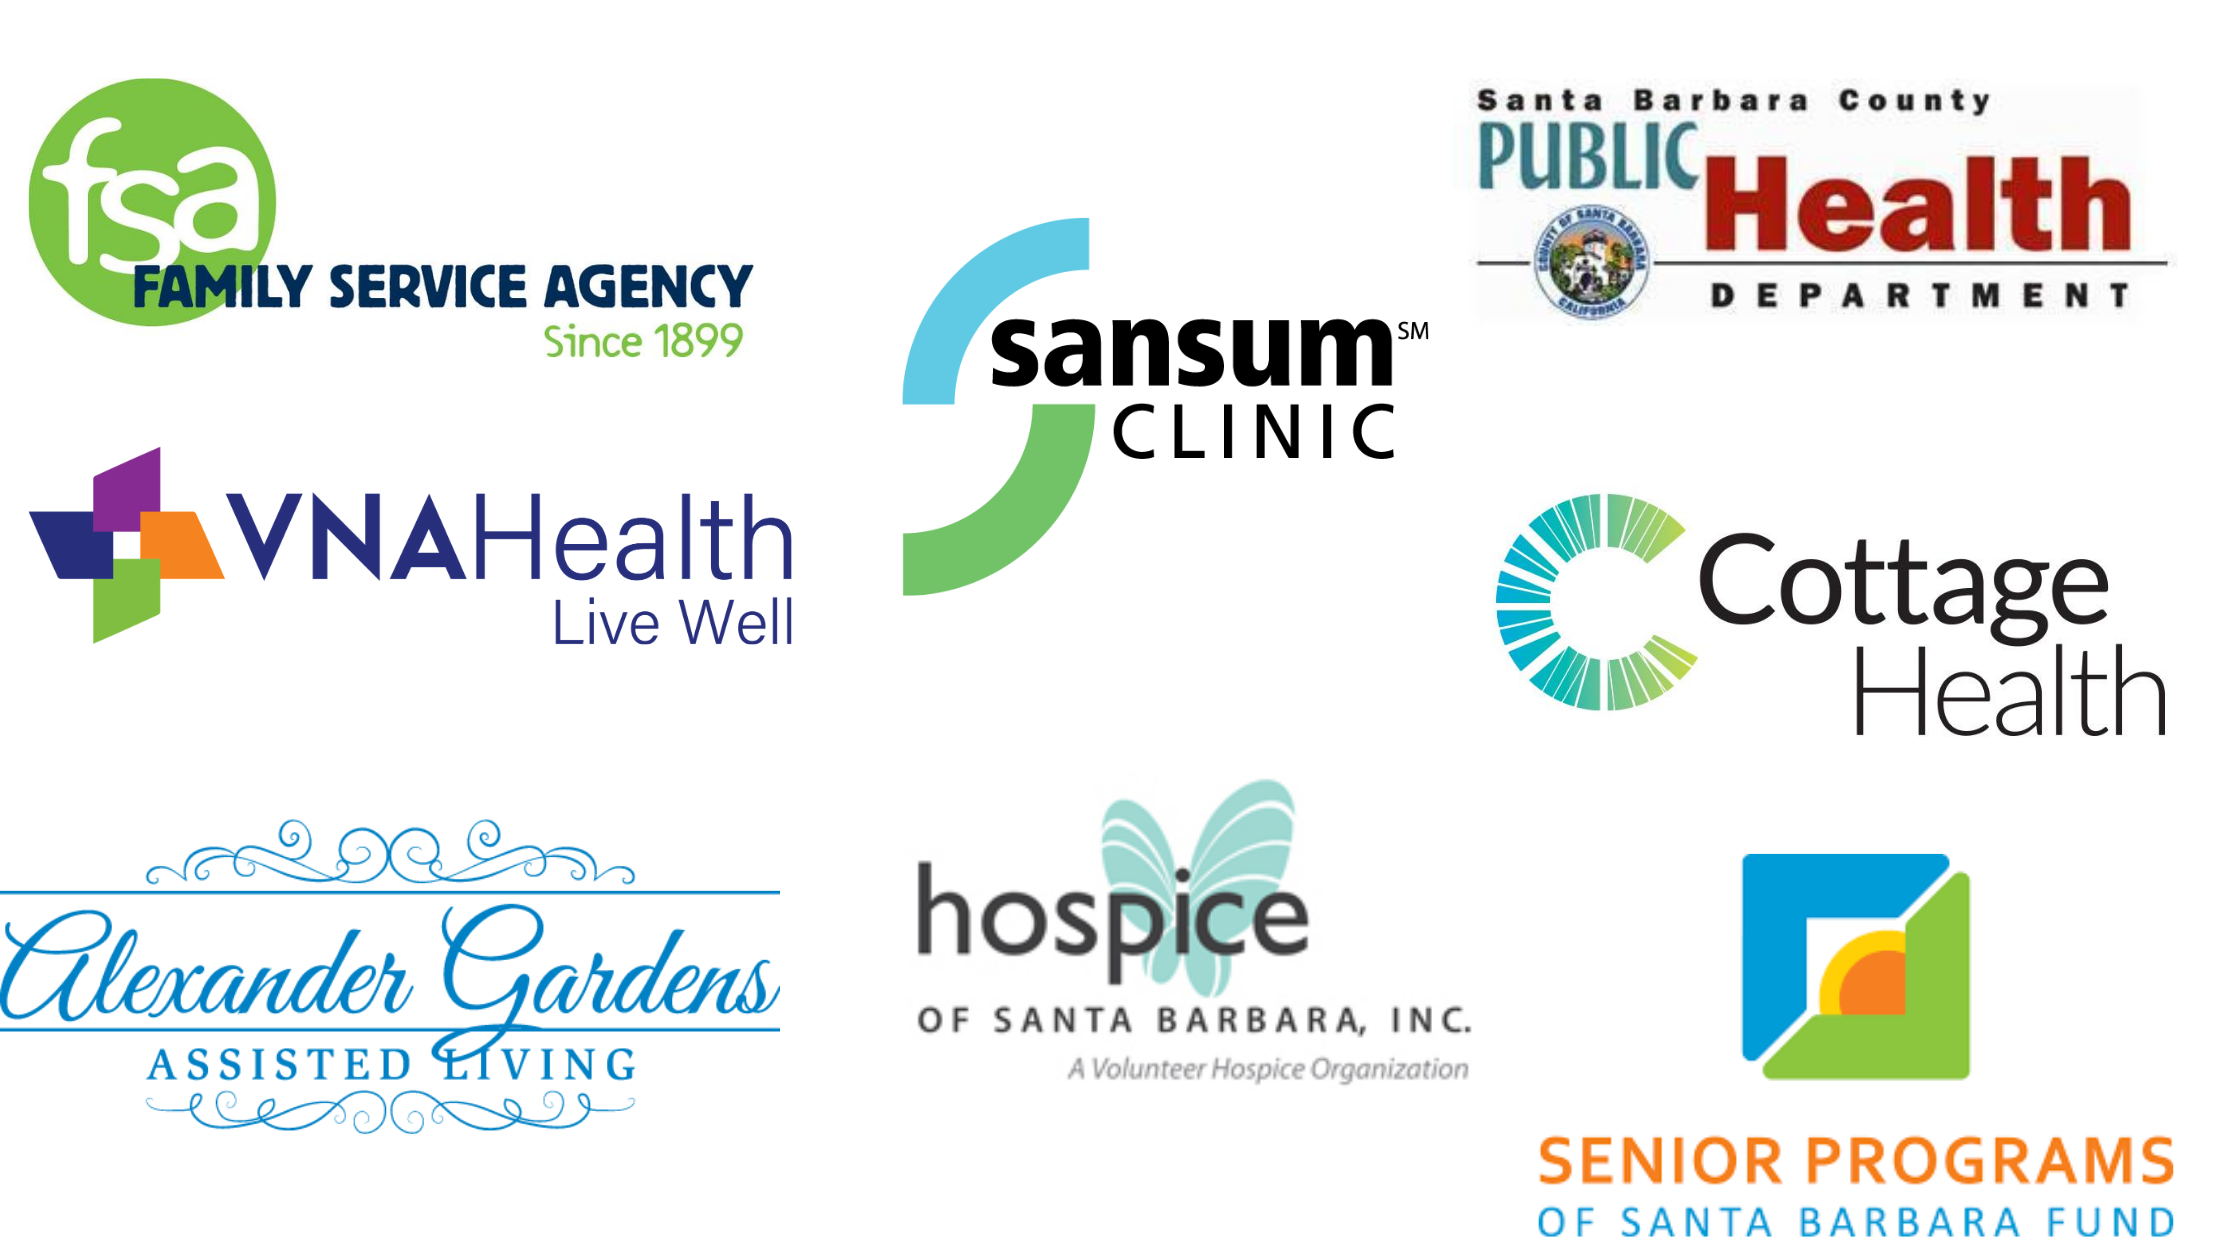 Planning partners for the 2020 Senior Expo flu clinic include Alexander Gardens Assisted Living, Cottage Health, Family Service Agency, Hospice of Santa Barbara, Sansum Clinic, Santa Barbara County Public Health Department, Senior Programs of Santa Barbara Fund, and VNA Health.